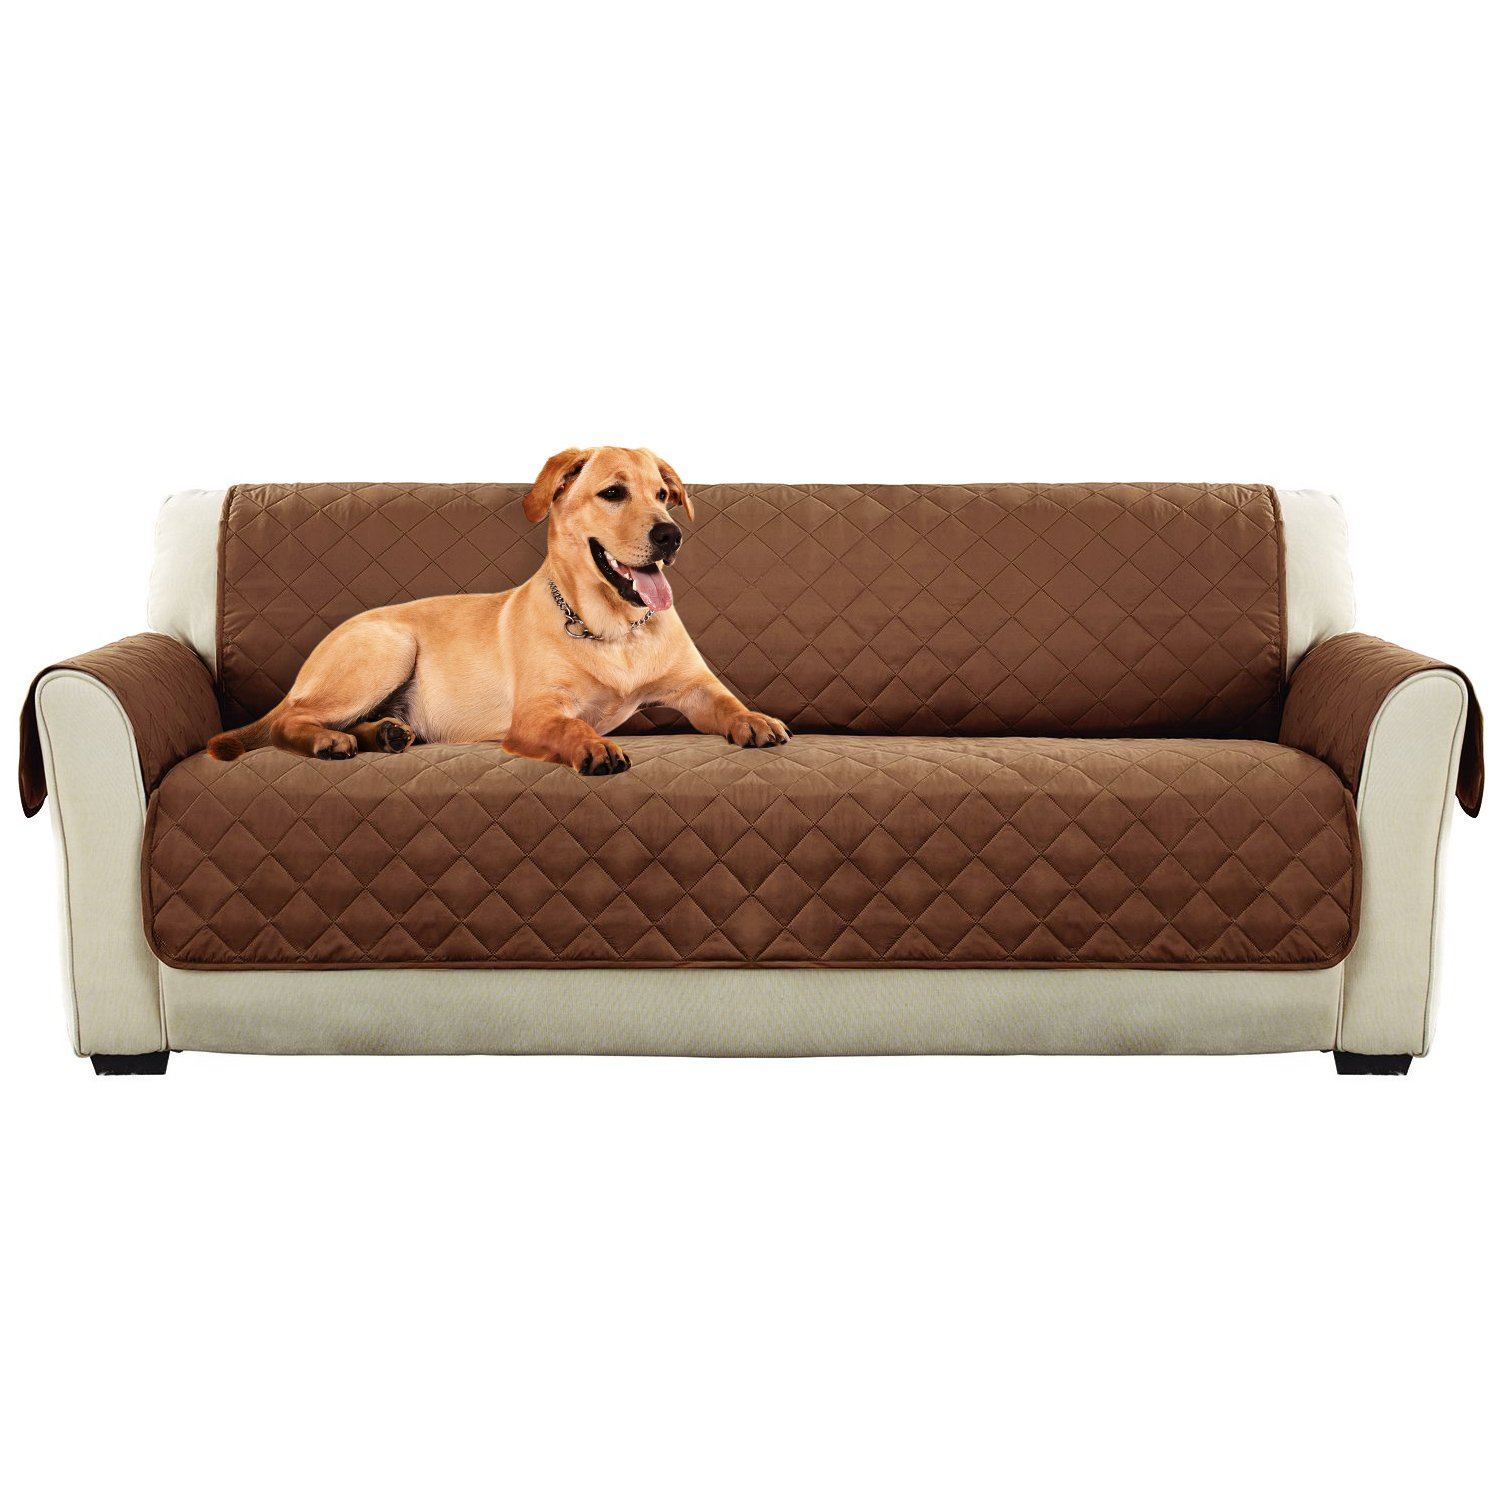 Animals Favorite Pet Sofa Cover Quilted Pet Throw Furniture Protector for Dogs